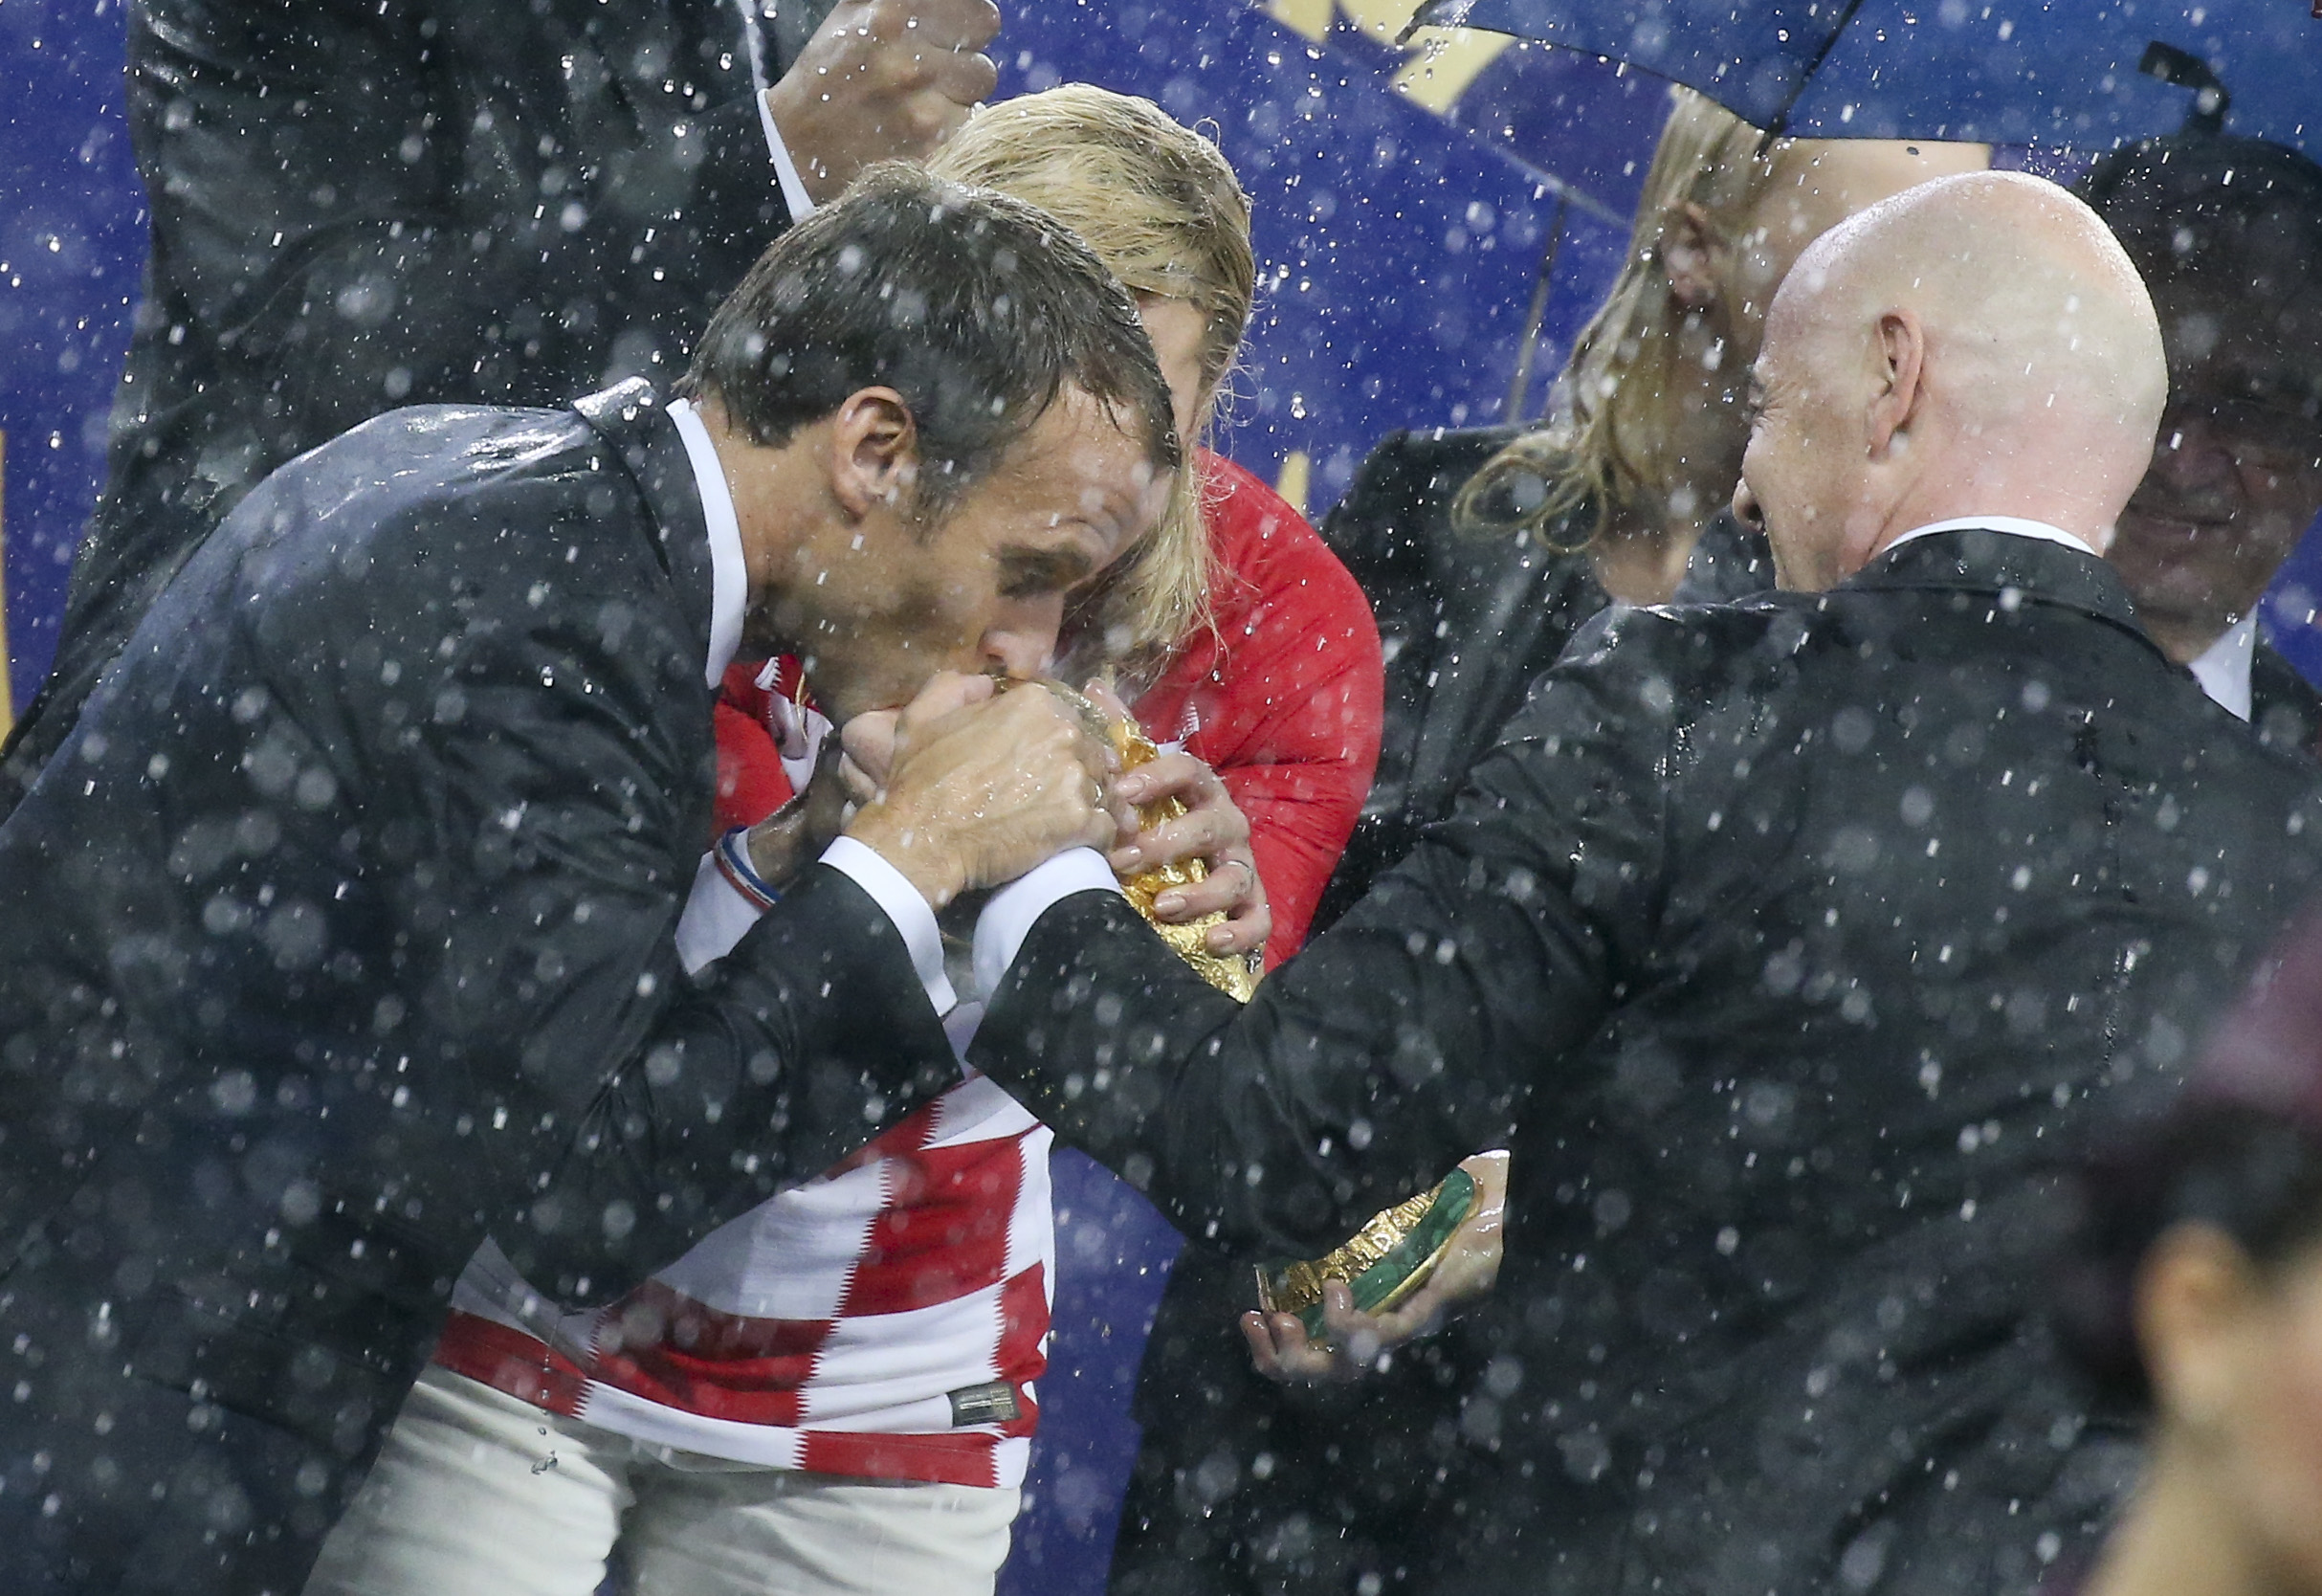 President of France Emmanuel Macron and President of Croatia Kolinda Grabar-Kitarovic want to kiss the World Cup held by FIFA President Gianni Infantino during the trophy ceremony following the 2018 FIFA World Cup Russia Final between France and Croatia at Luzhniki Stadium on July 15, 2018 in Moscow, Russia. (Photo by Jean Catuffe/Getty Images)